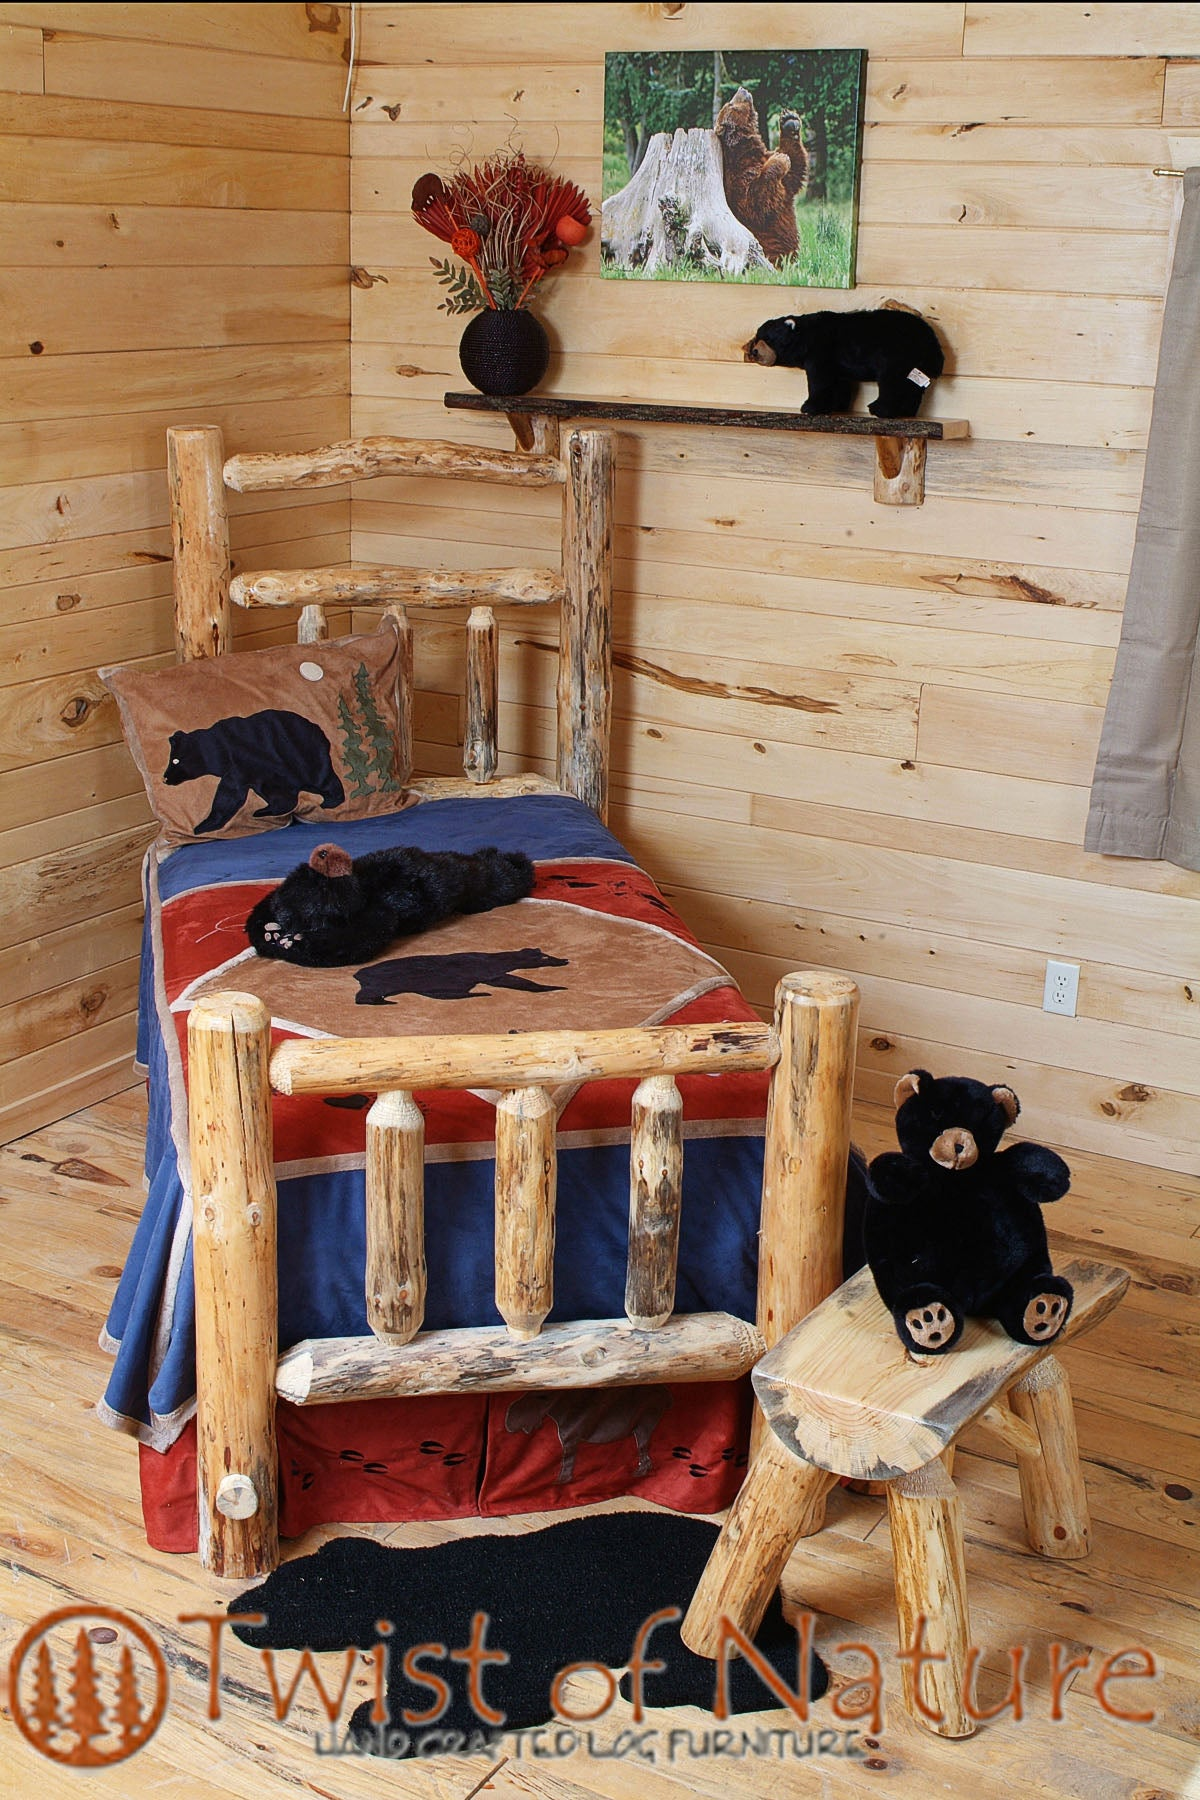 Deluxe Log Bed Frame Kit